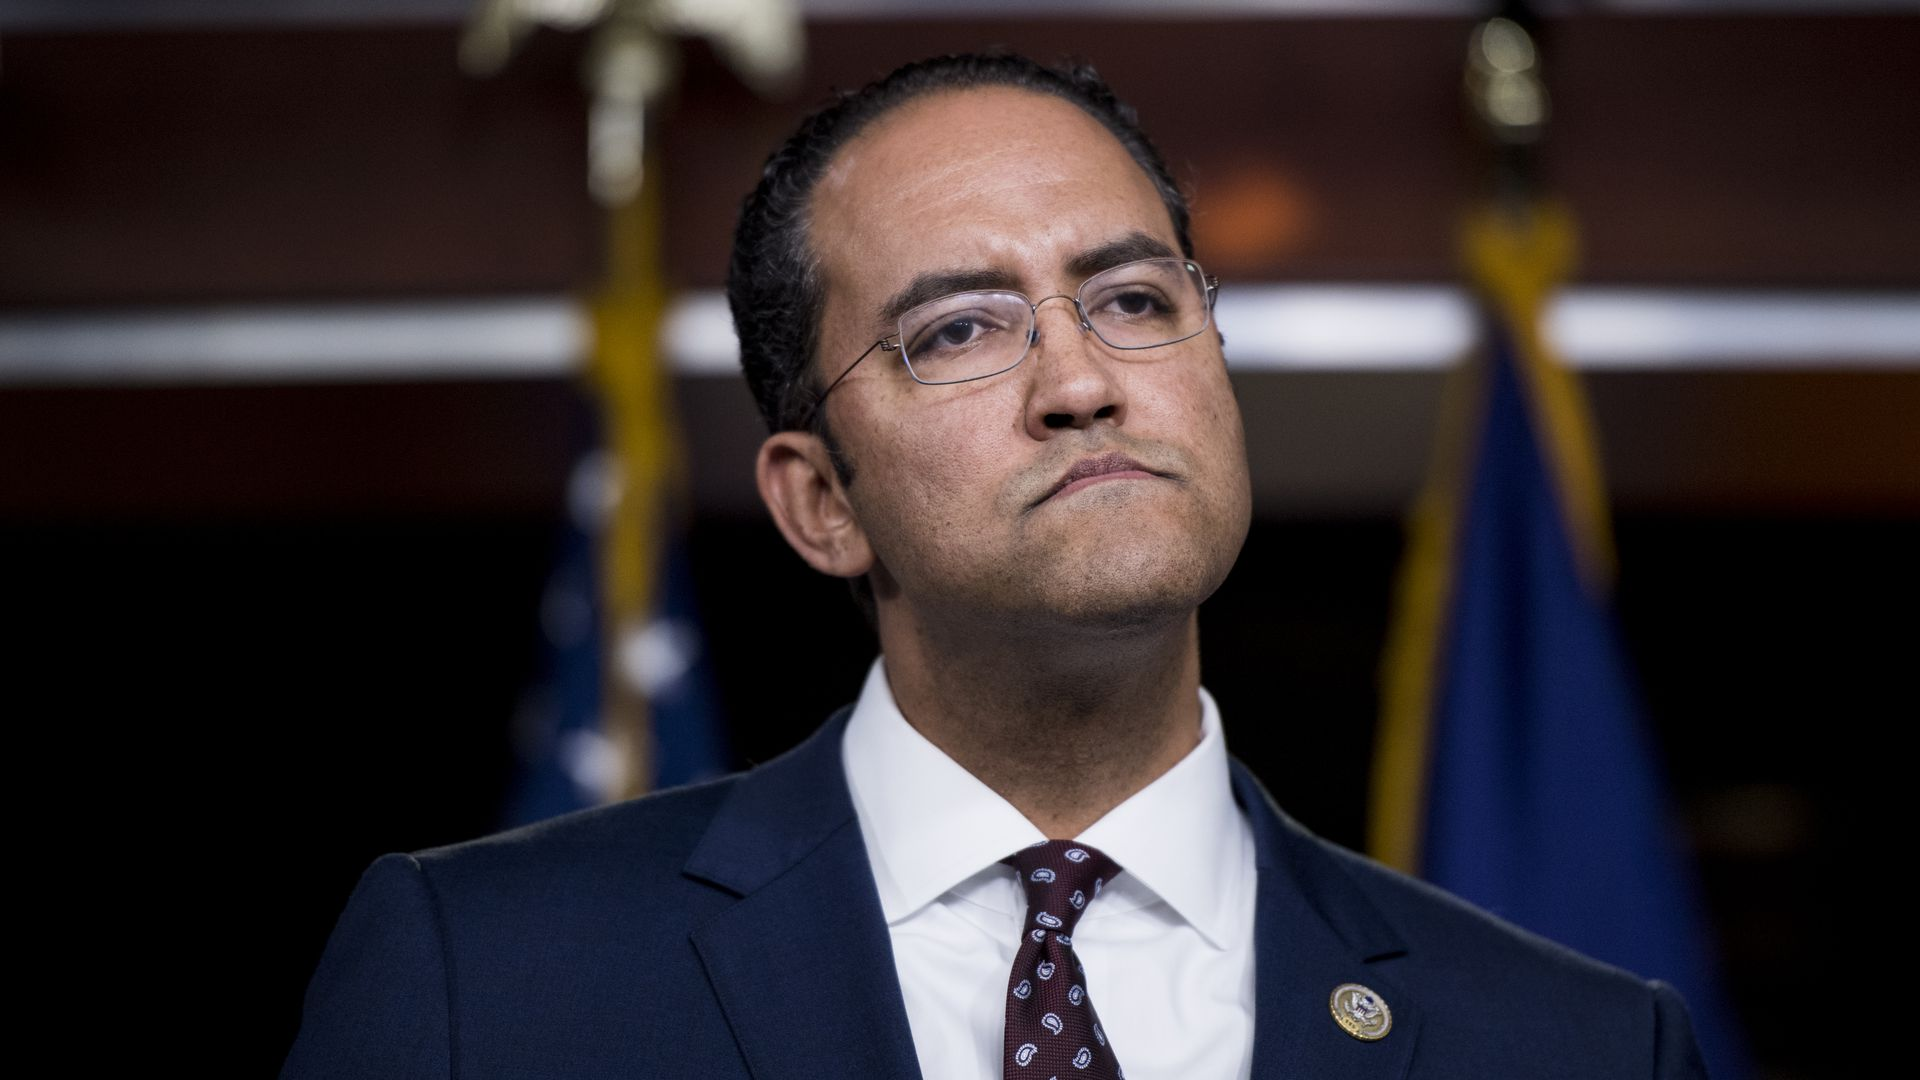 Rep. Will Hurd looking unhappy